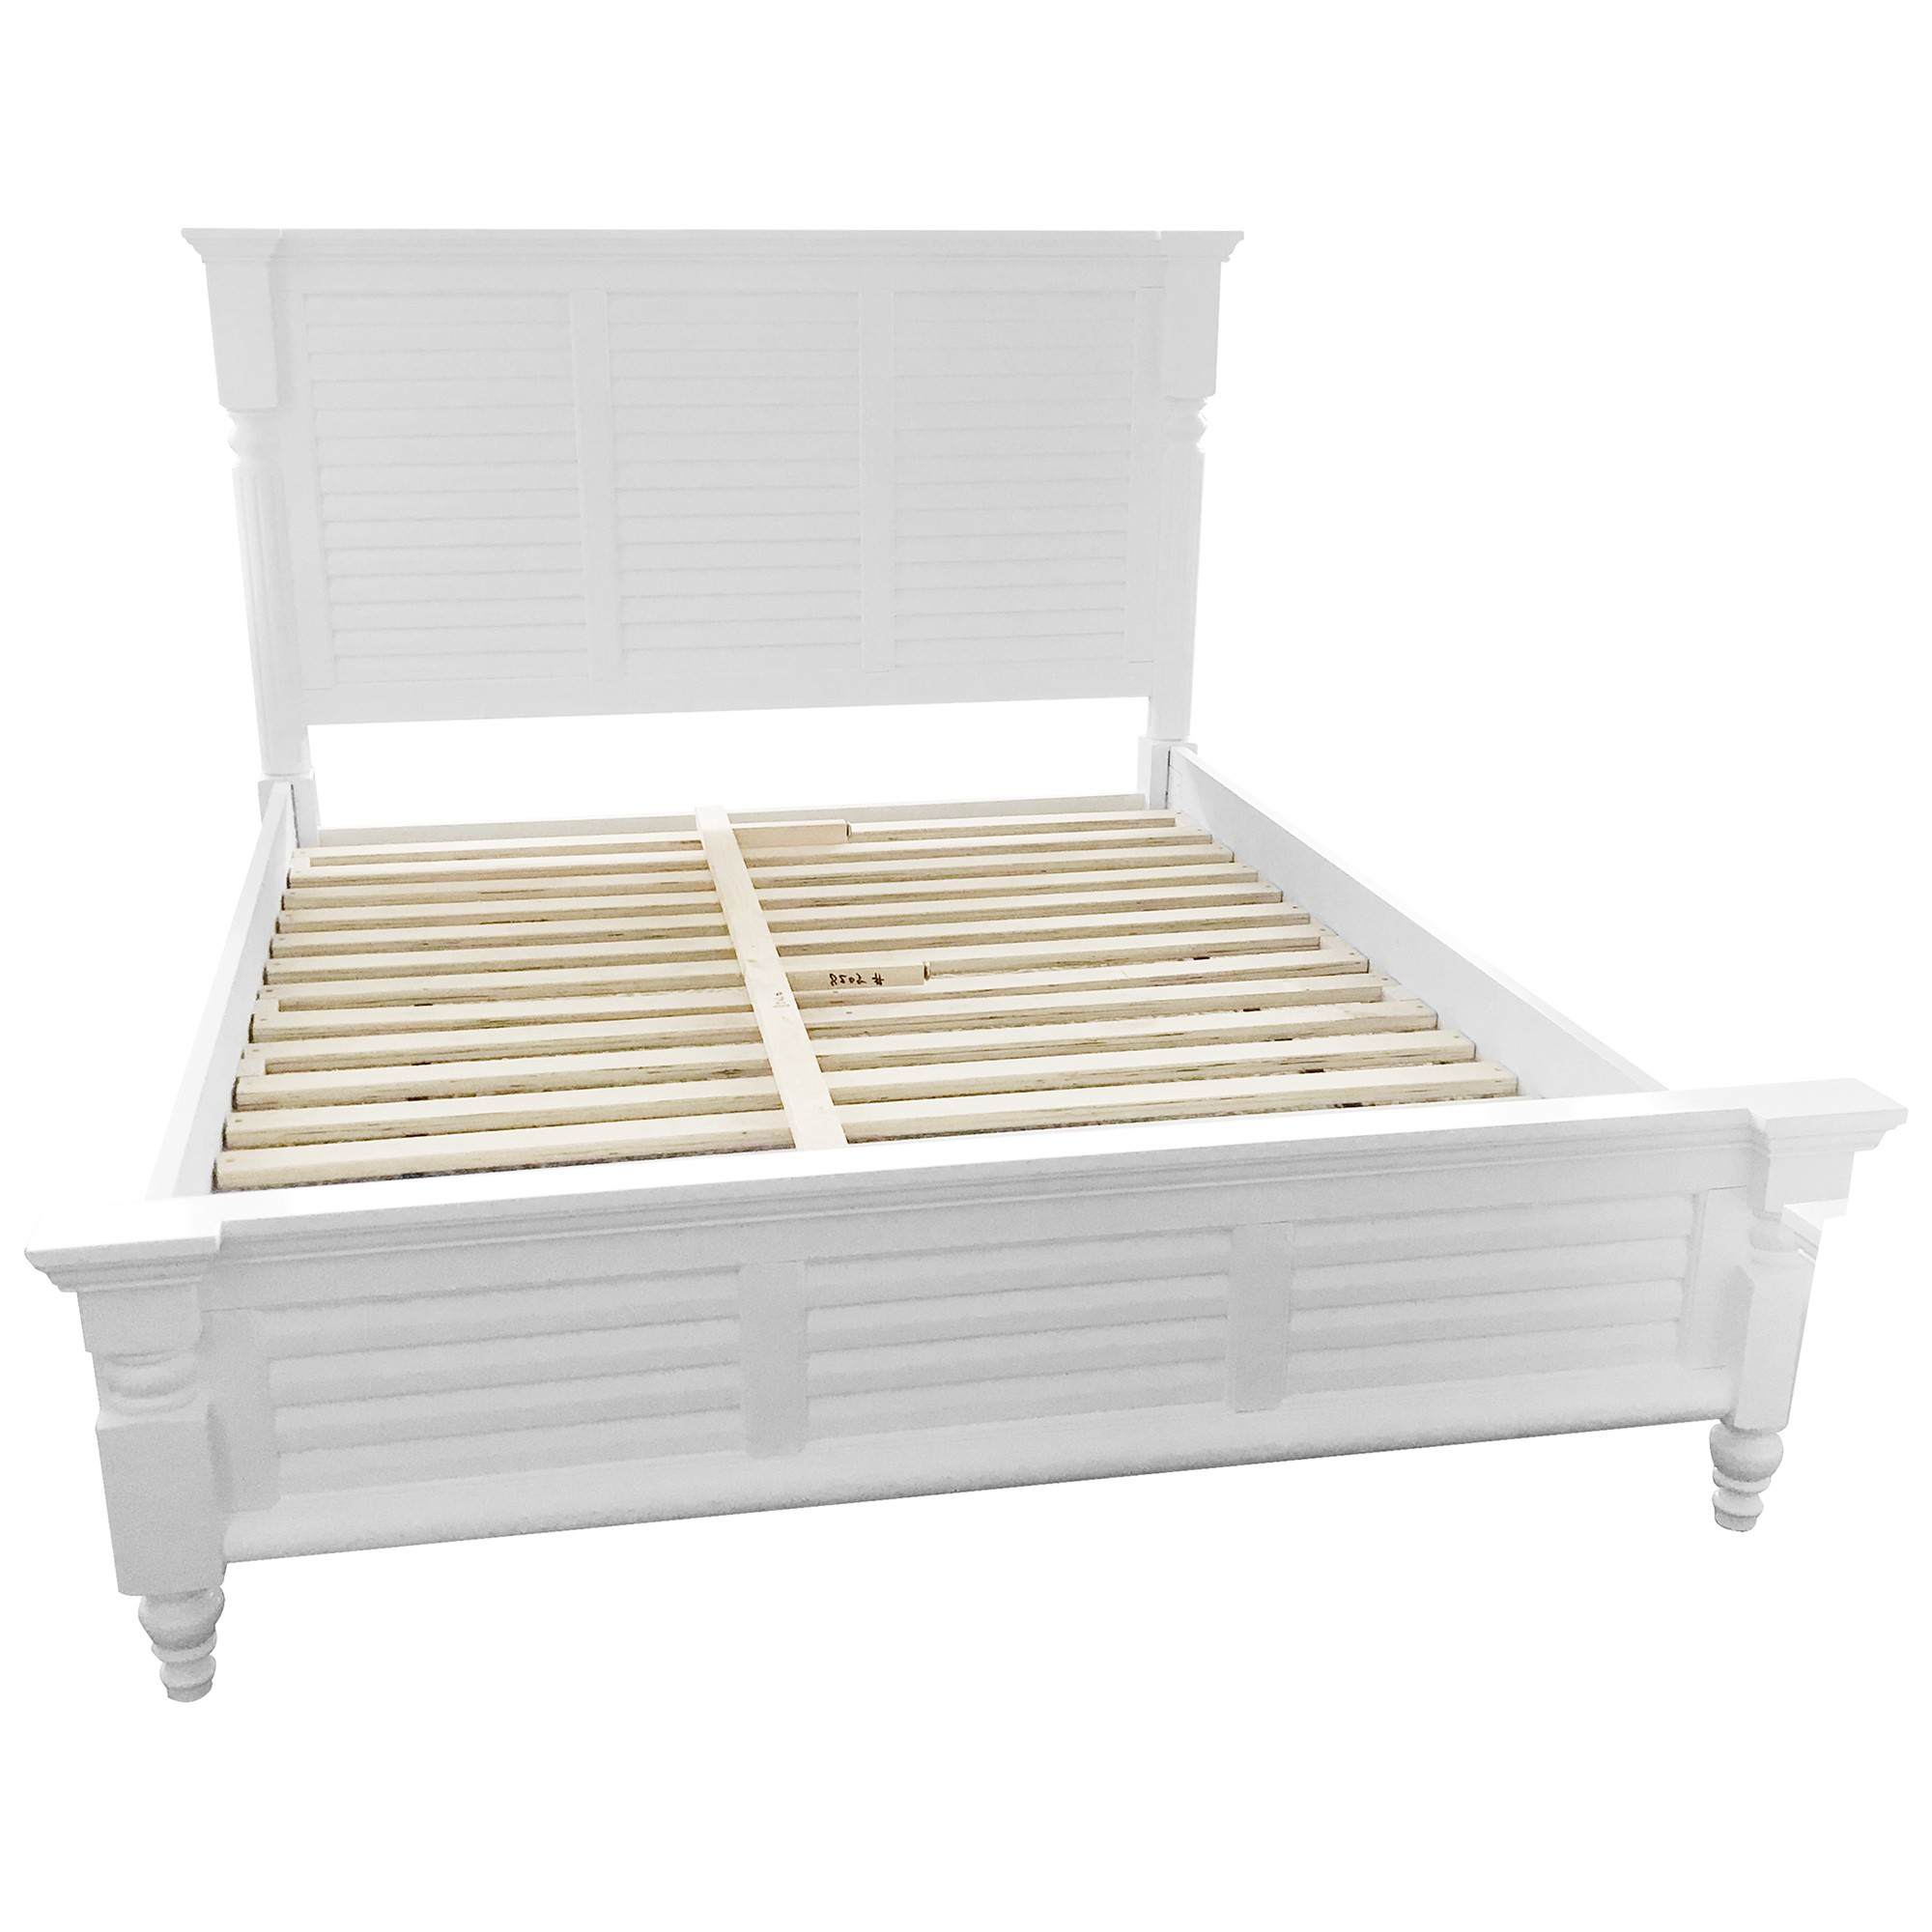 Fitzroy Poplar Timber Bed, Queen, White